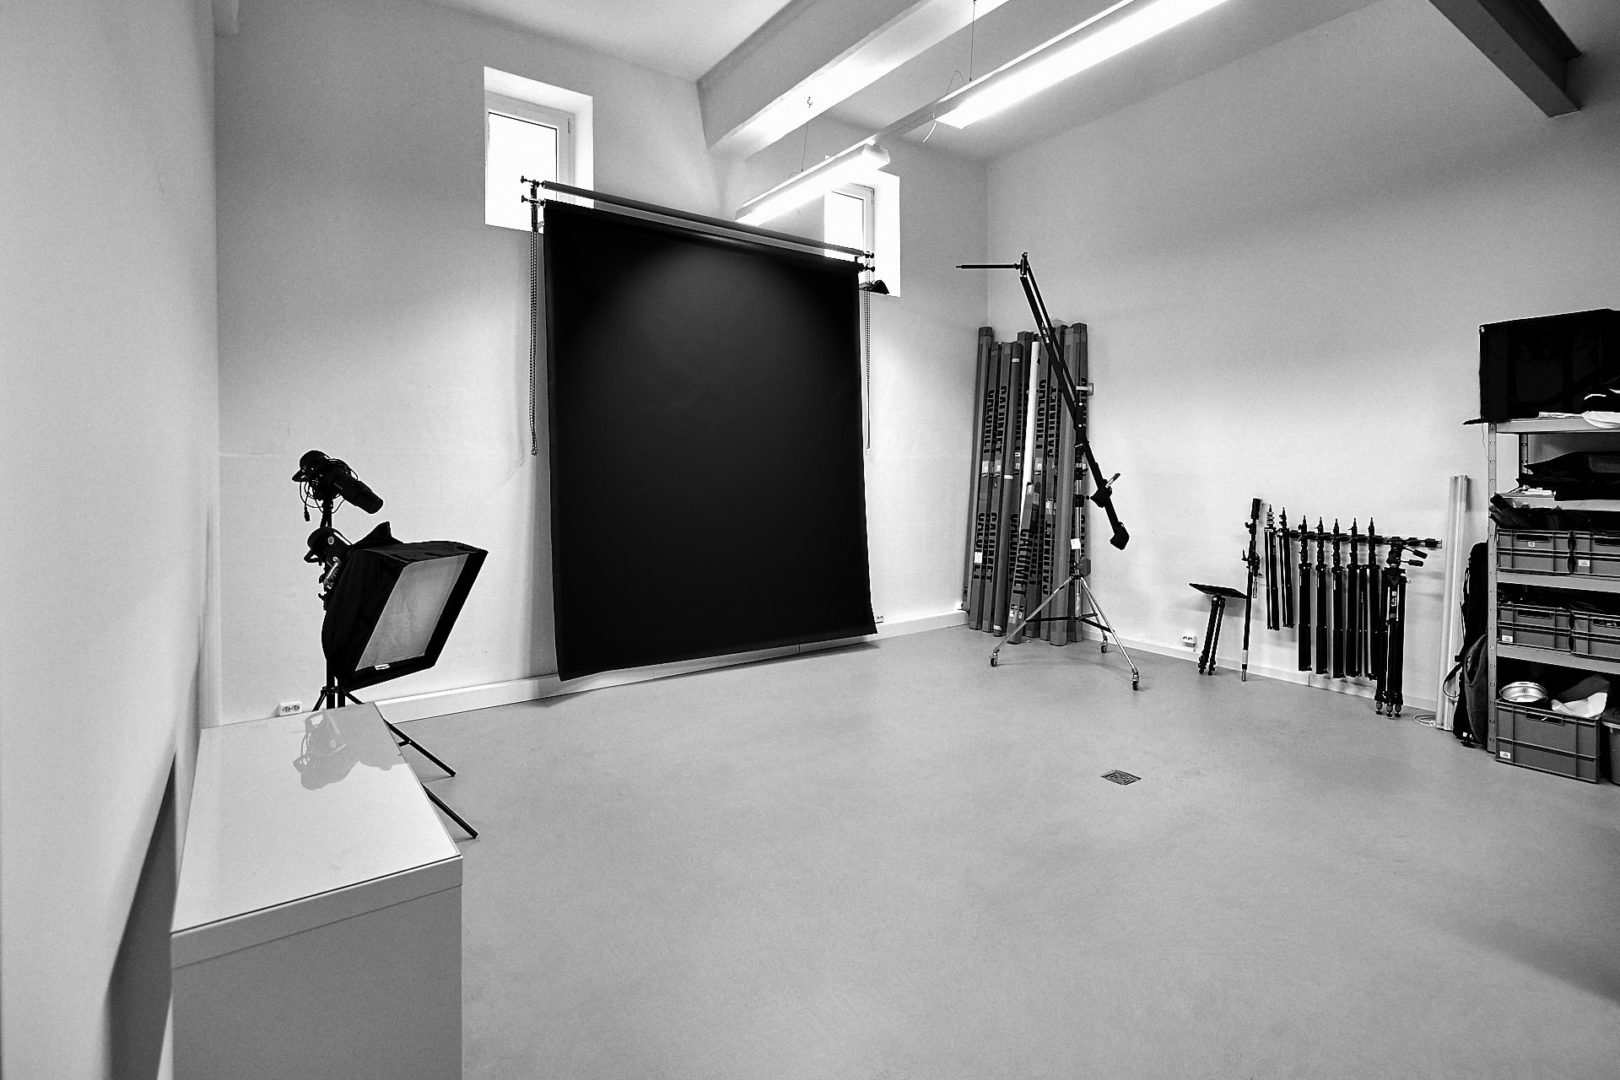 Foto und Video Studio Mietstudio